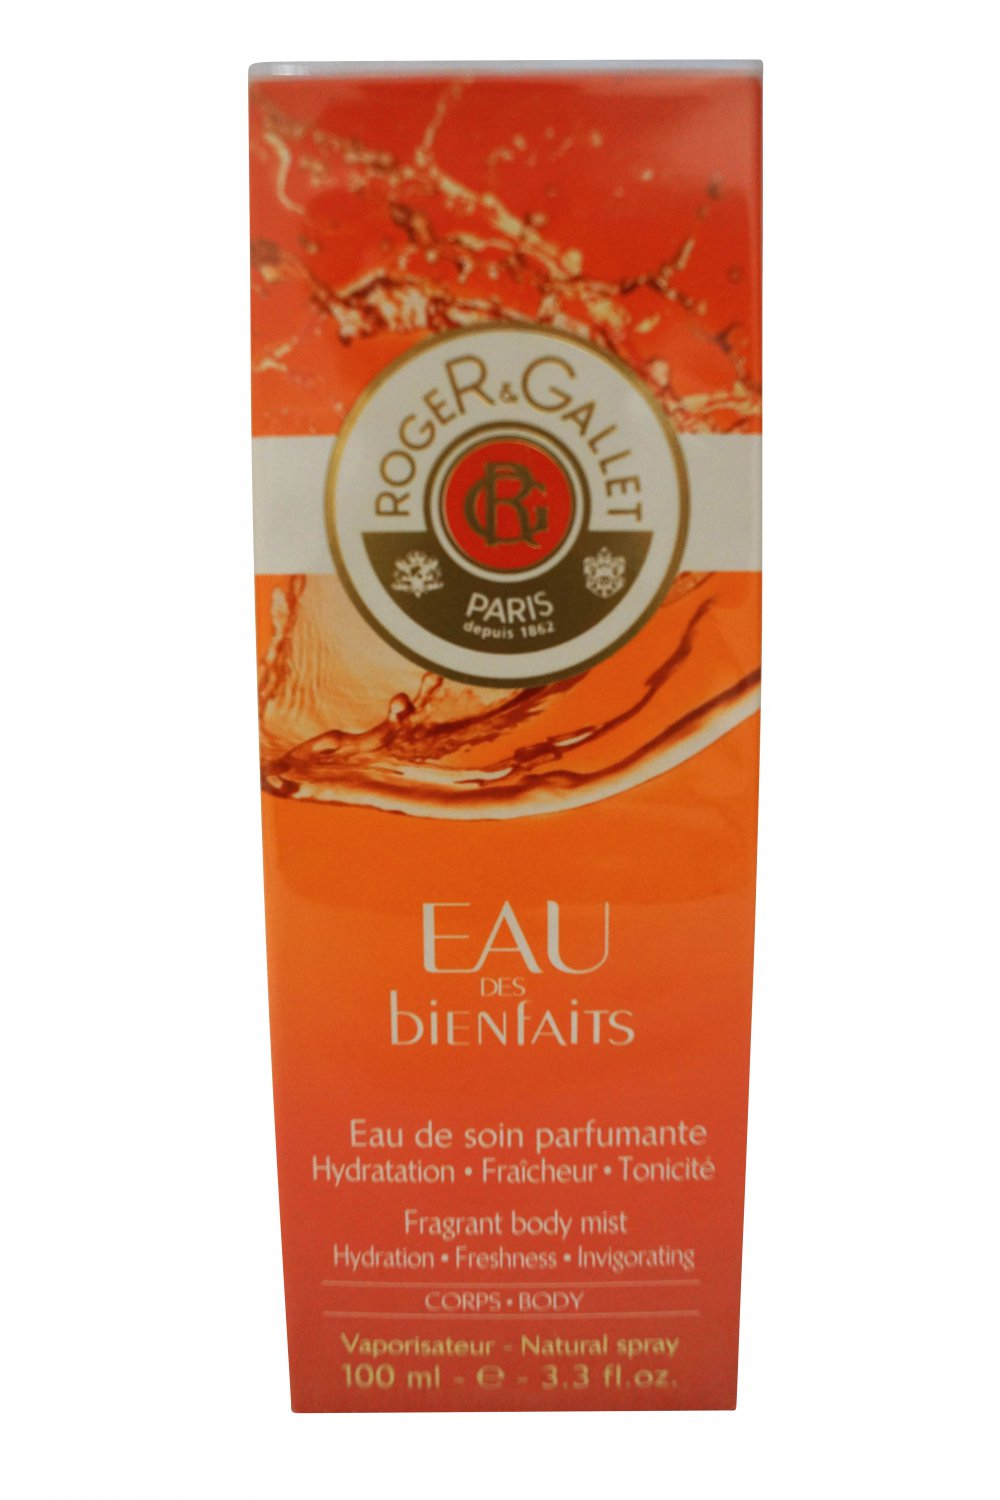 Roger & Gallet Eau Des Bienfaits Fragrant Body Mist Spray 3.3 oz